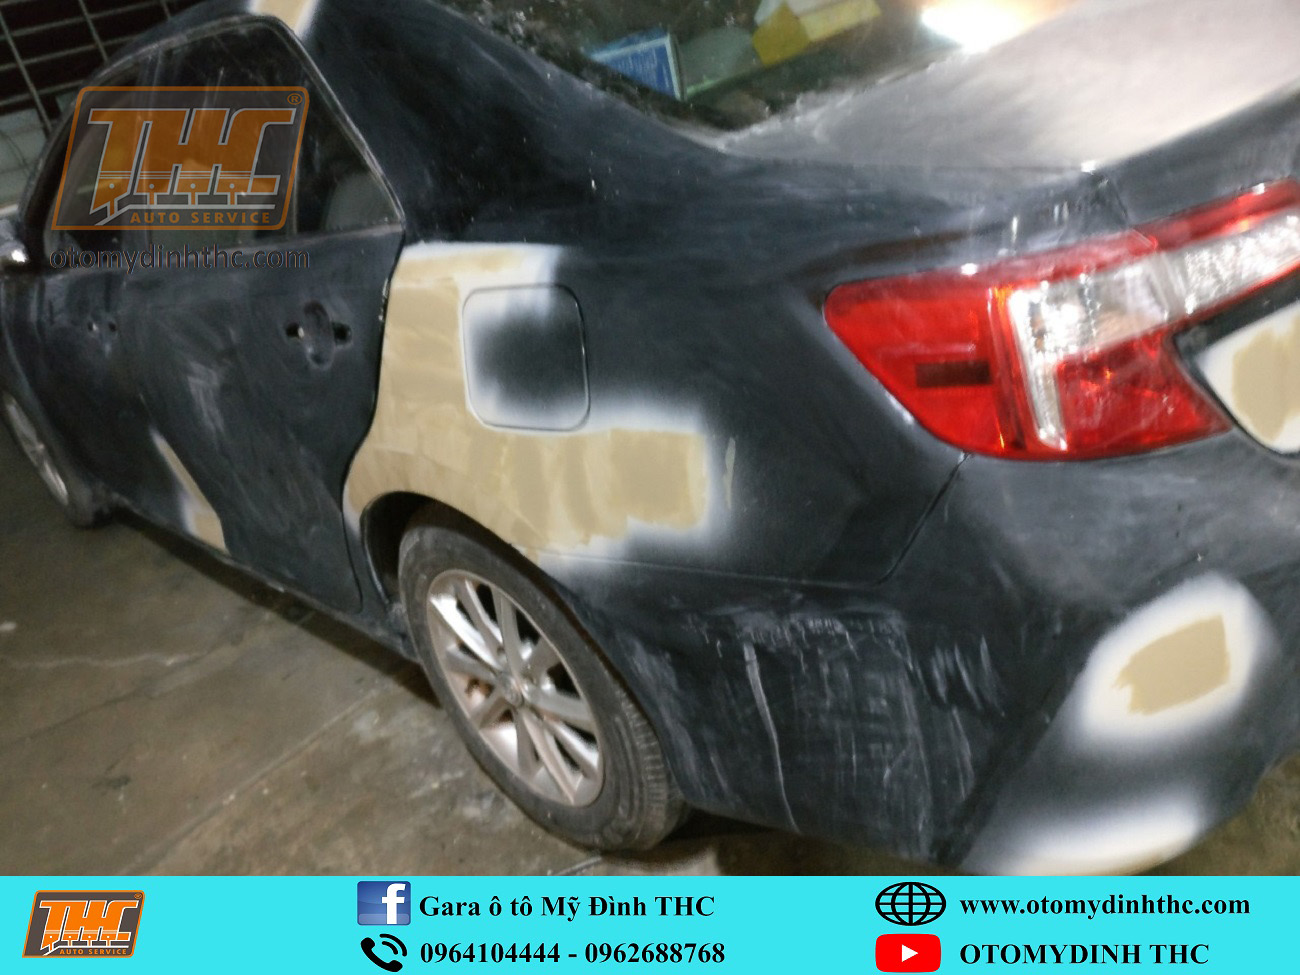 son-ca-xe-toyota-camry-1